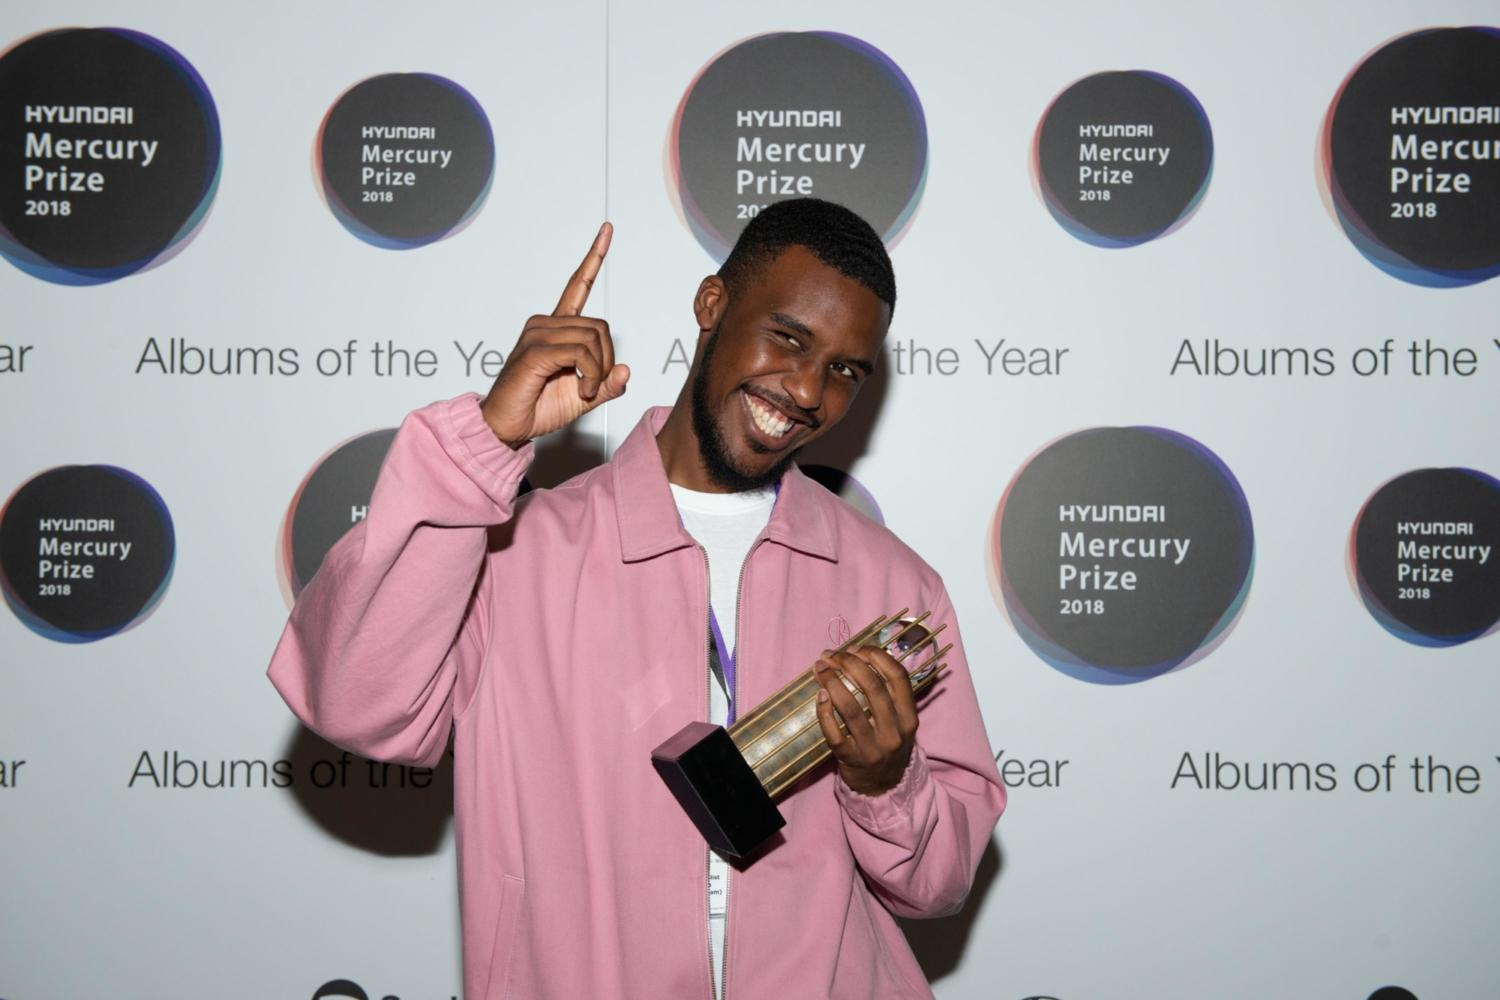 """I hope it reflects other young people's lives"" - Novelist talks getting a Hyundai Mercury Prize nomination for his debut album"